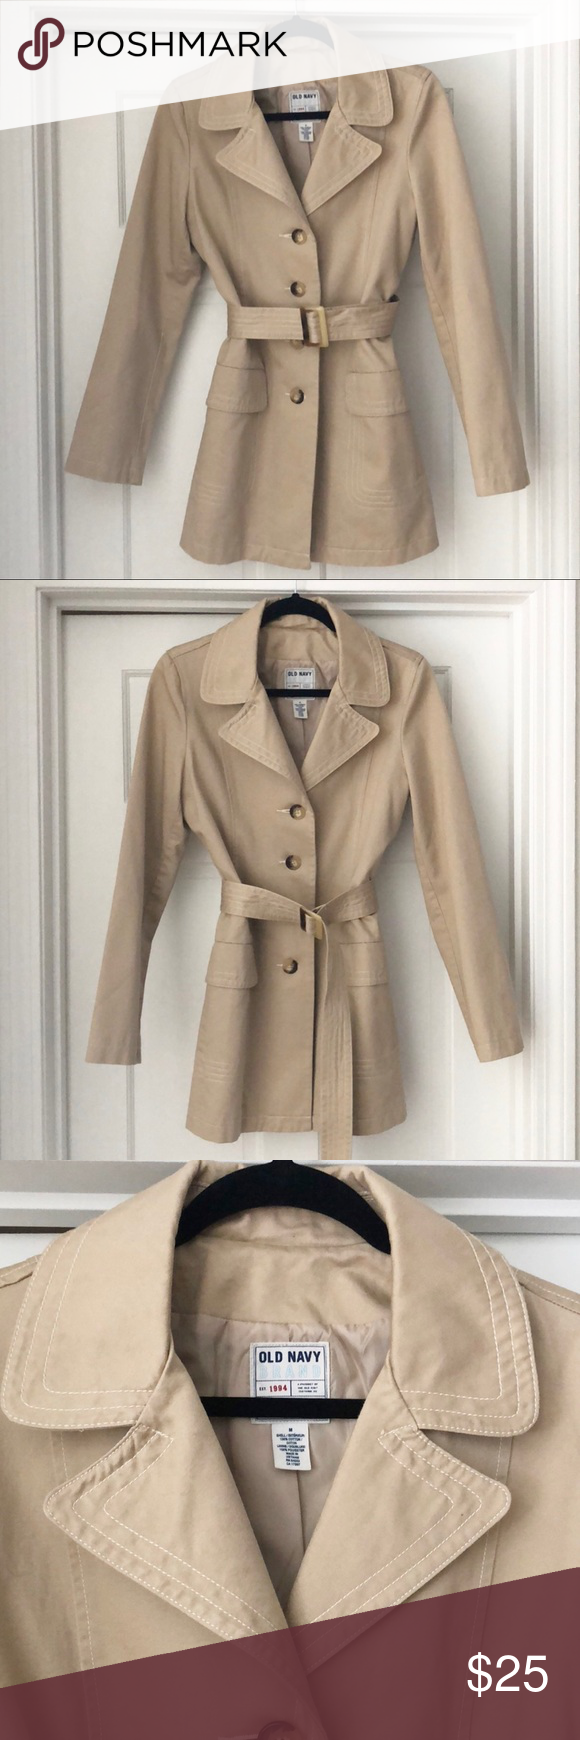 f5a4572d481 Old Navy Women s Tan Canvas Trench Coat Old Navy Women s Tan Canvas Trench  Coat Size M Button down. Two front flap pockets. Please note there is a  tiny mark ...